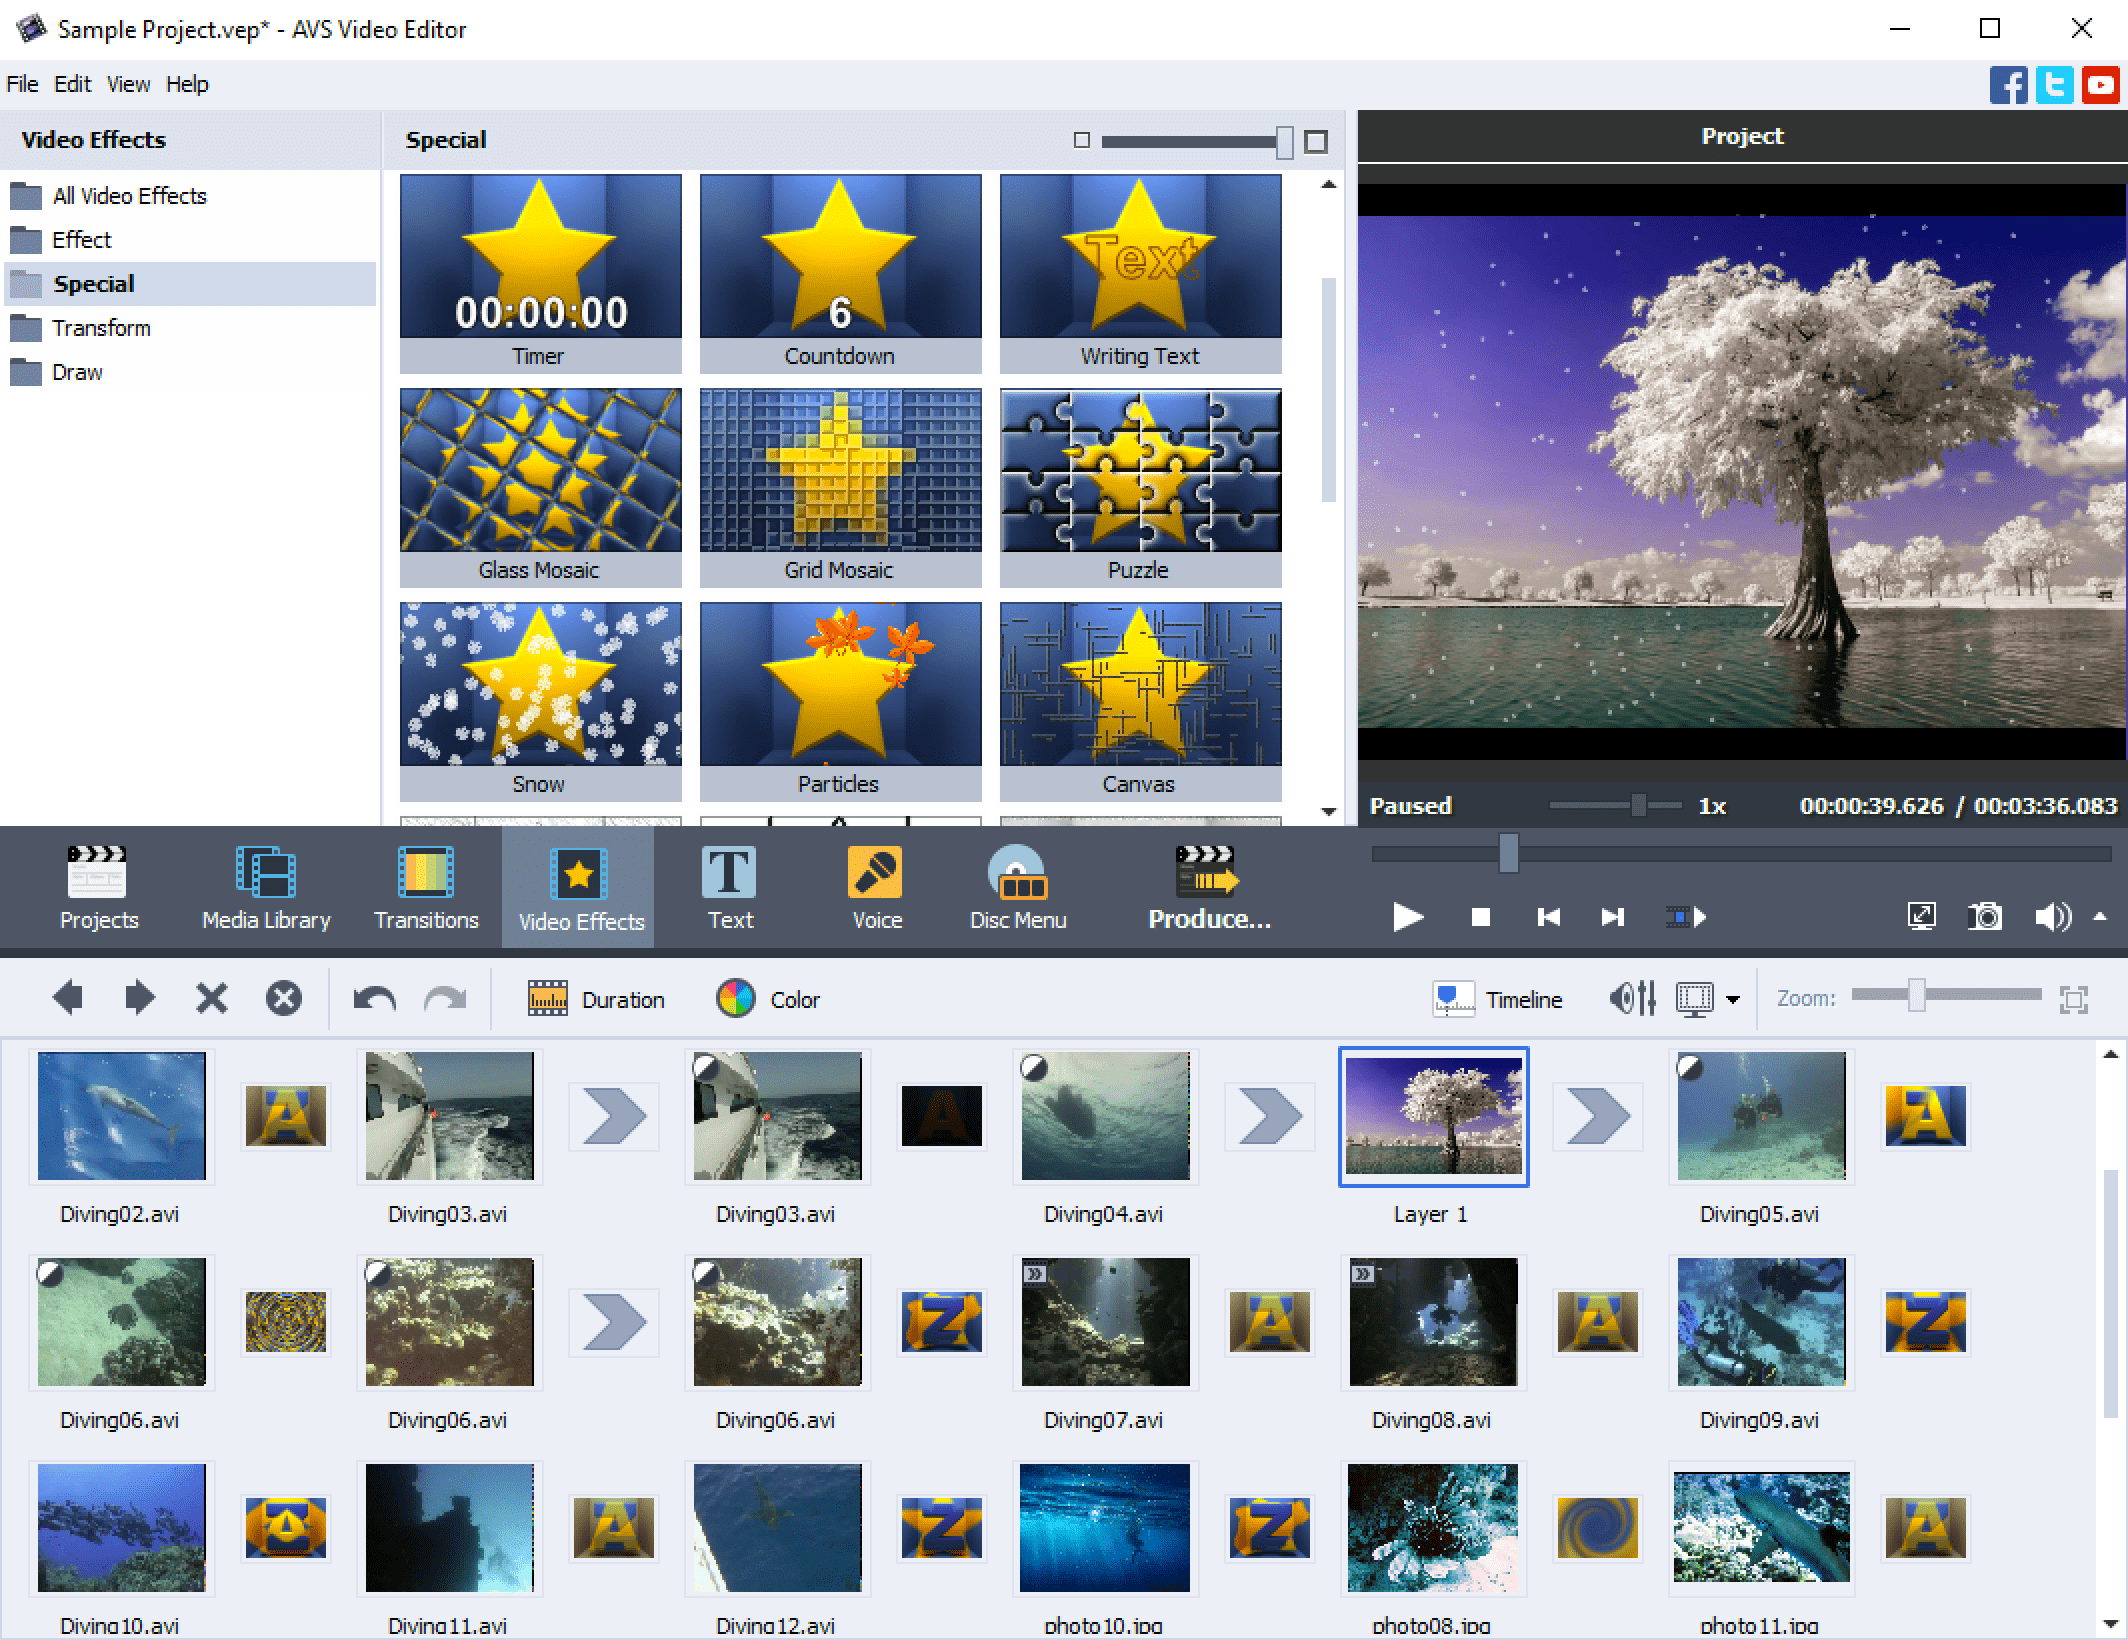 AVS Video Editor - Effects and transitions